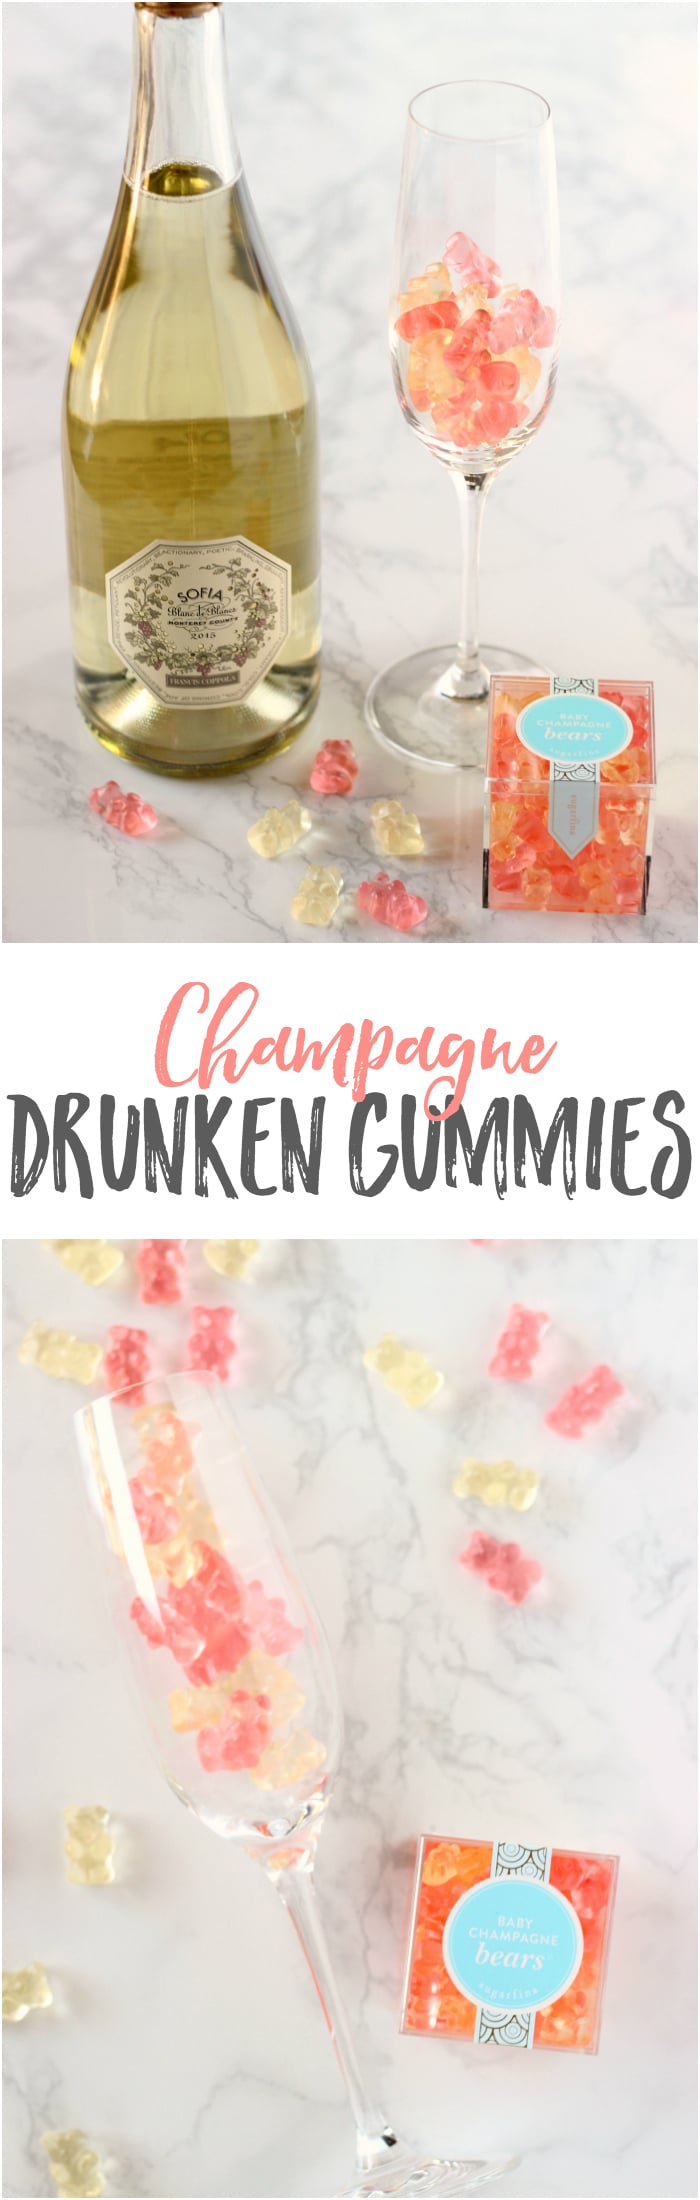 champagne-drunken-gummy-bears-pin